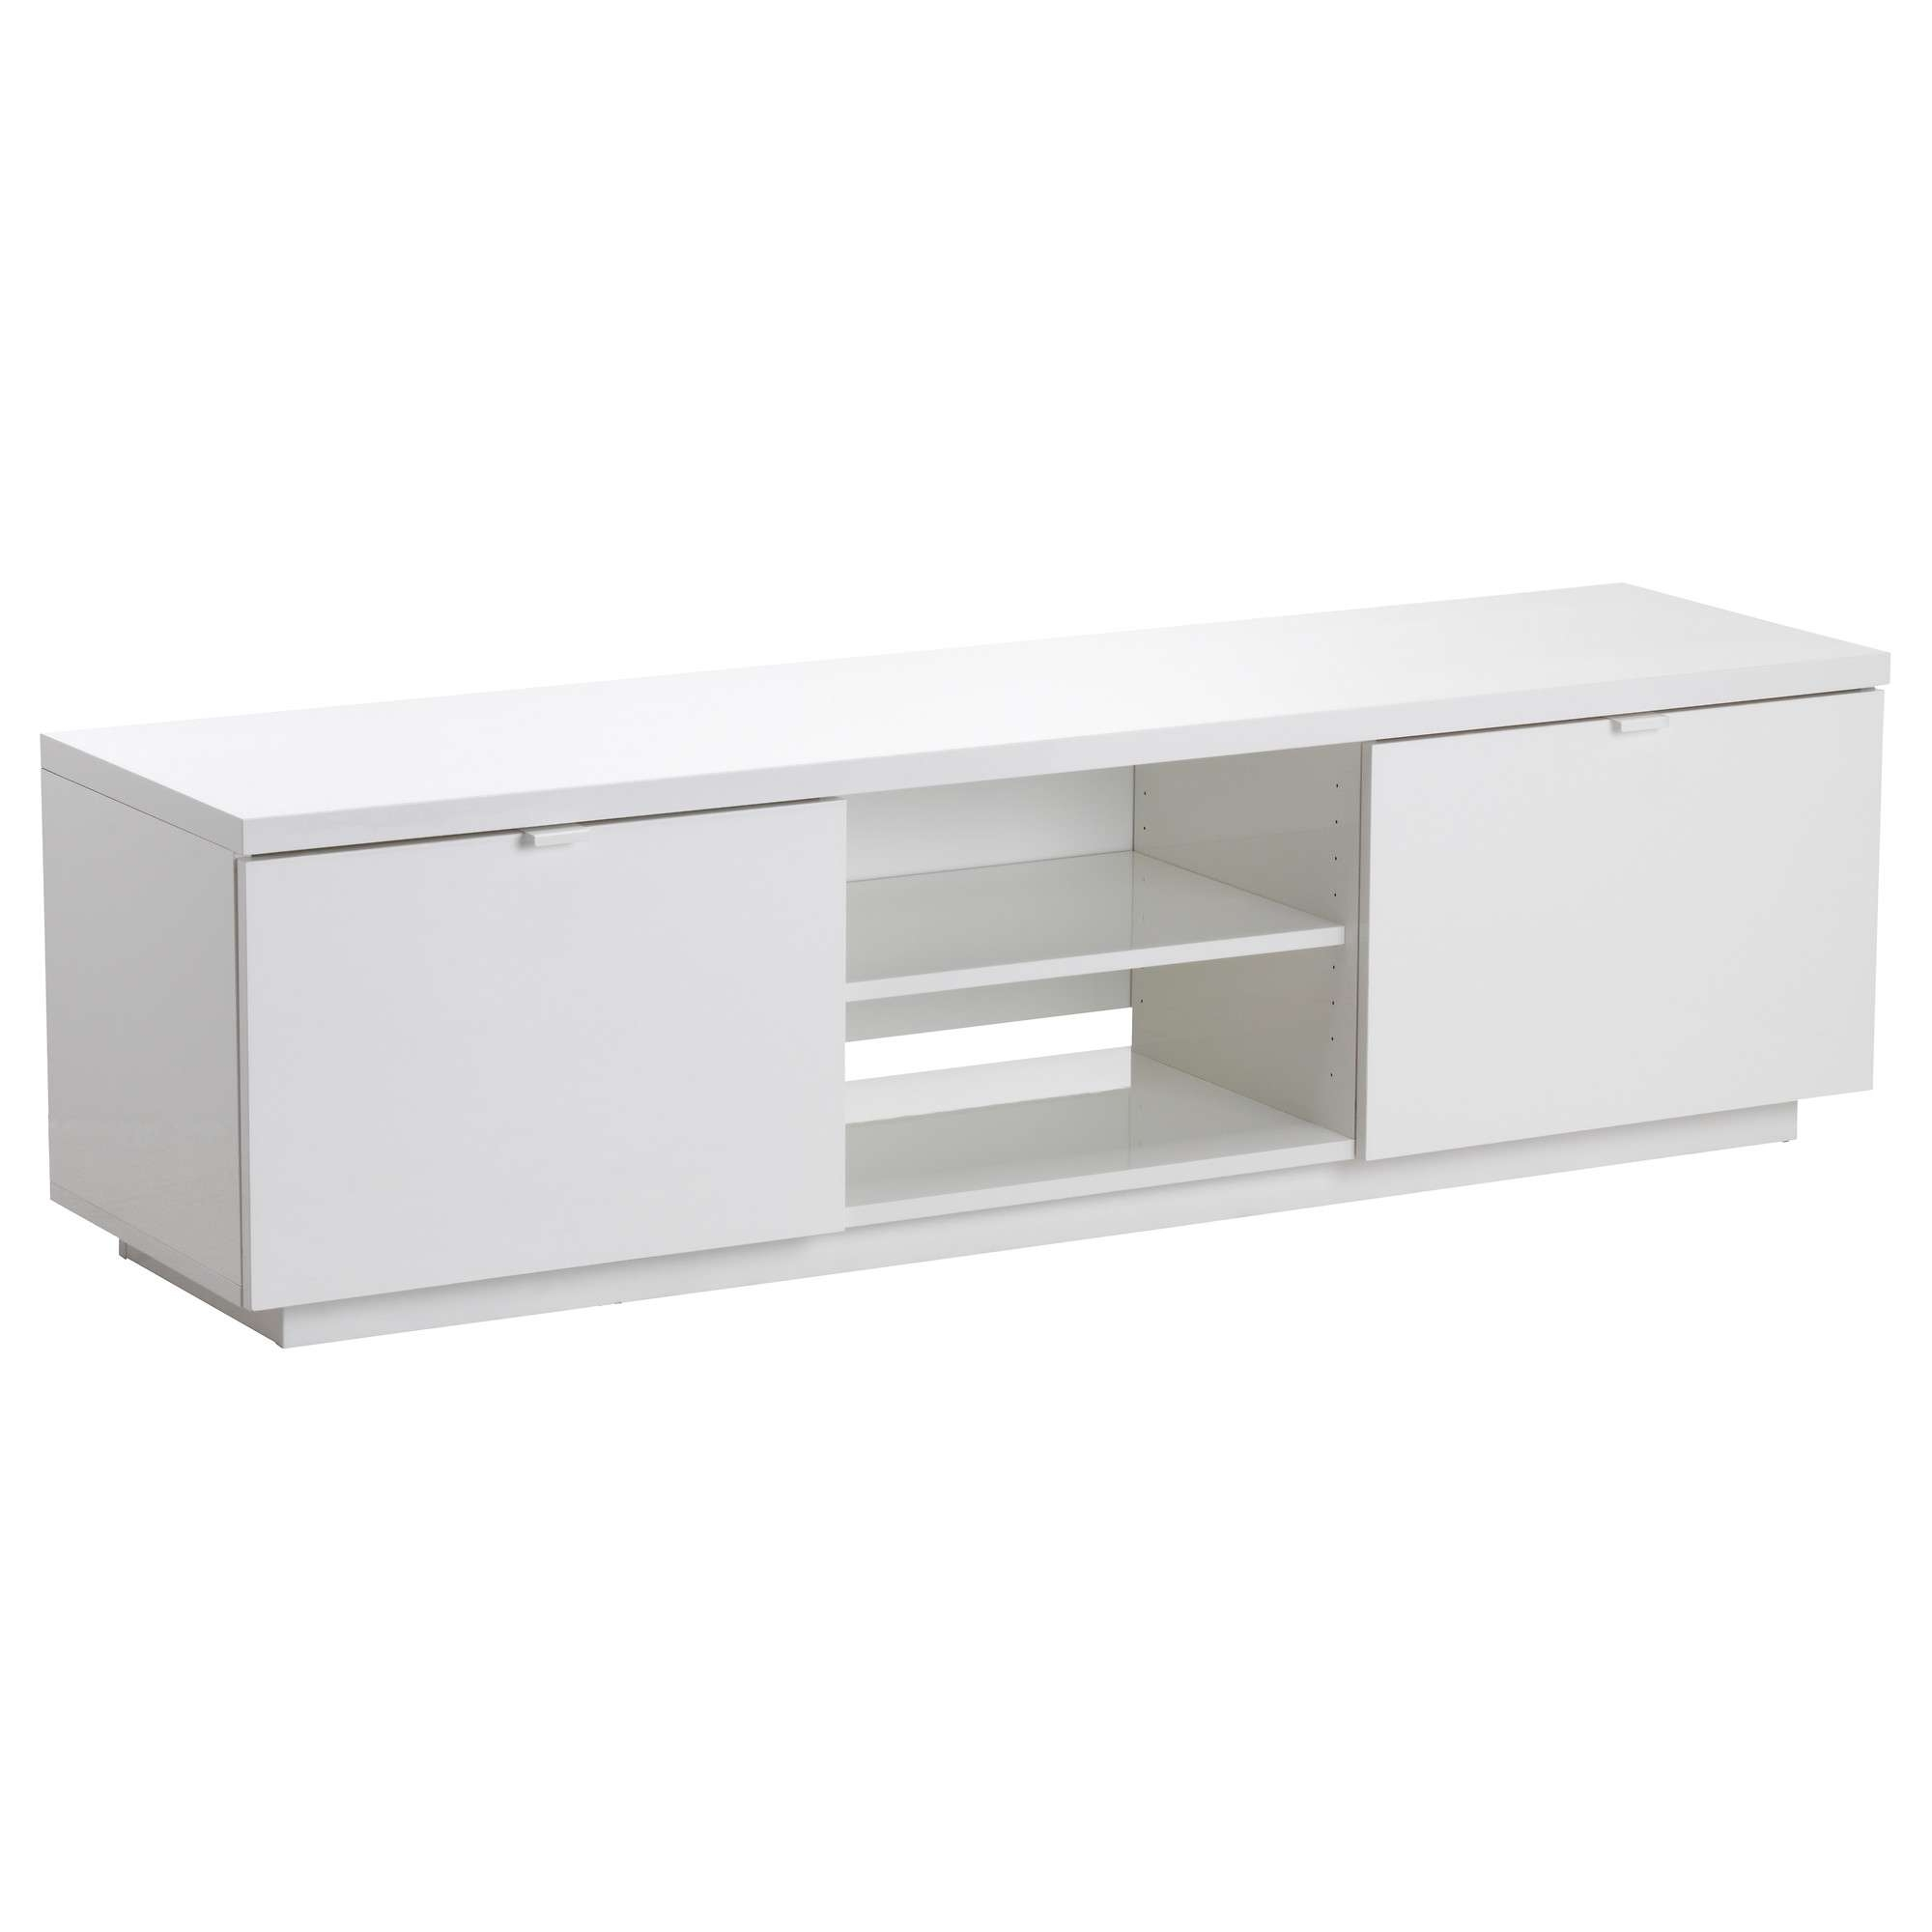 Byås Tv Unit – Ikea For 60 Cm High Tv Stands (View 1 of 15)